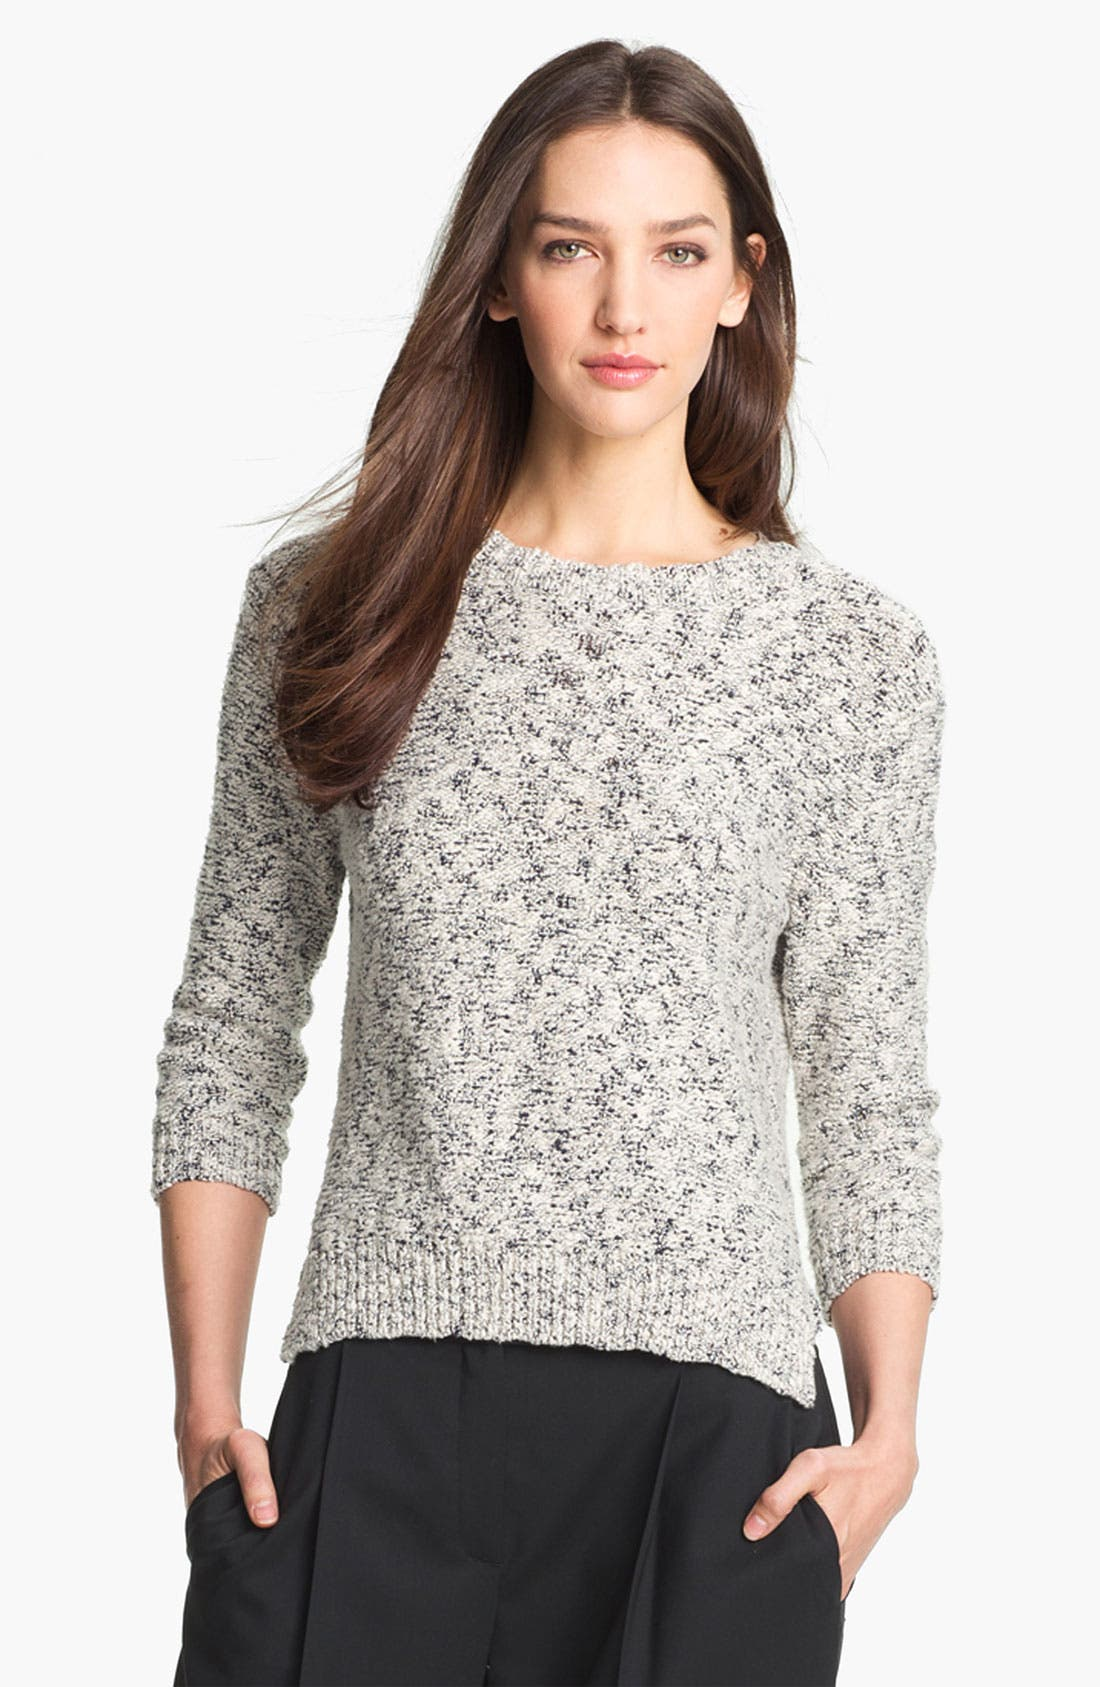 Alternate Image 1 Selected - Theory 'Rainee' Cotton Blend Sweater